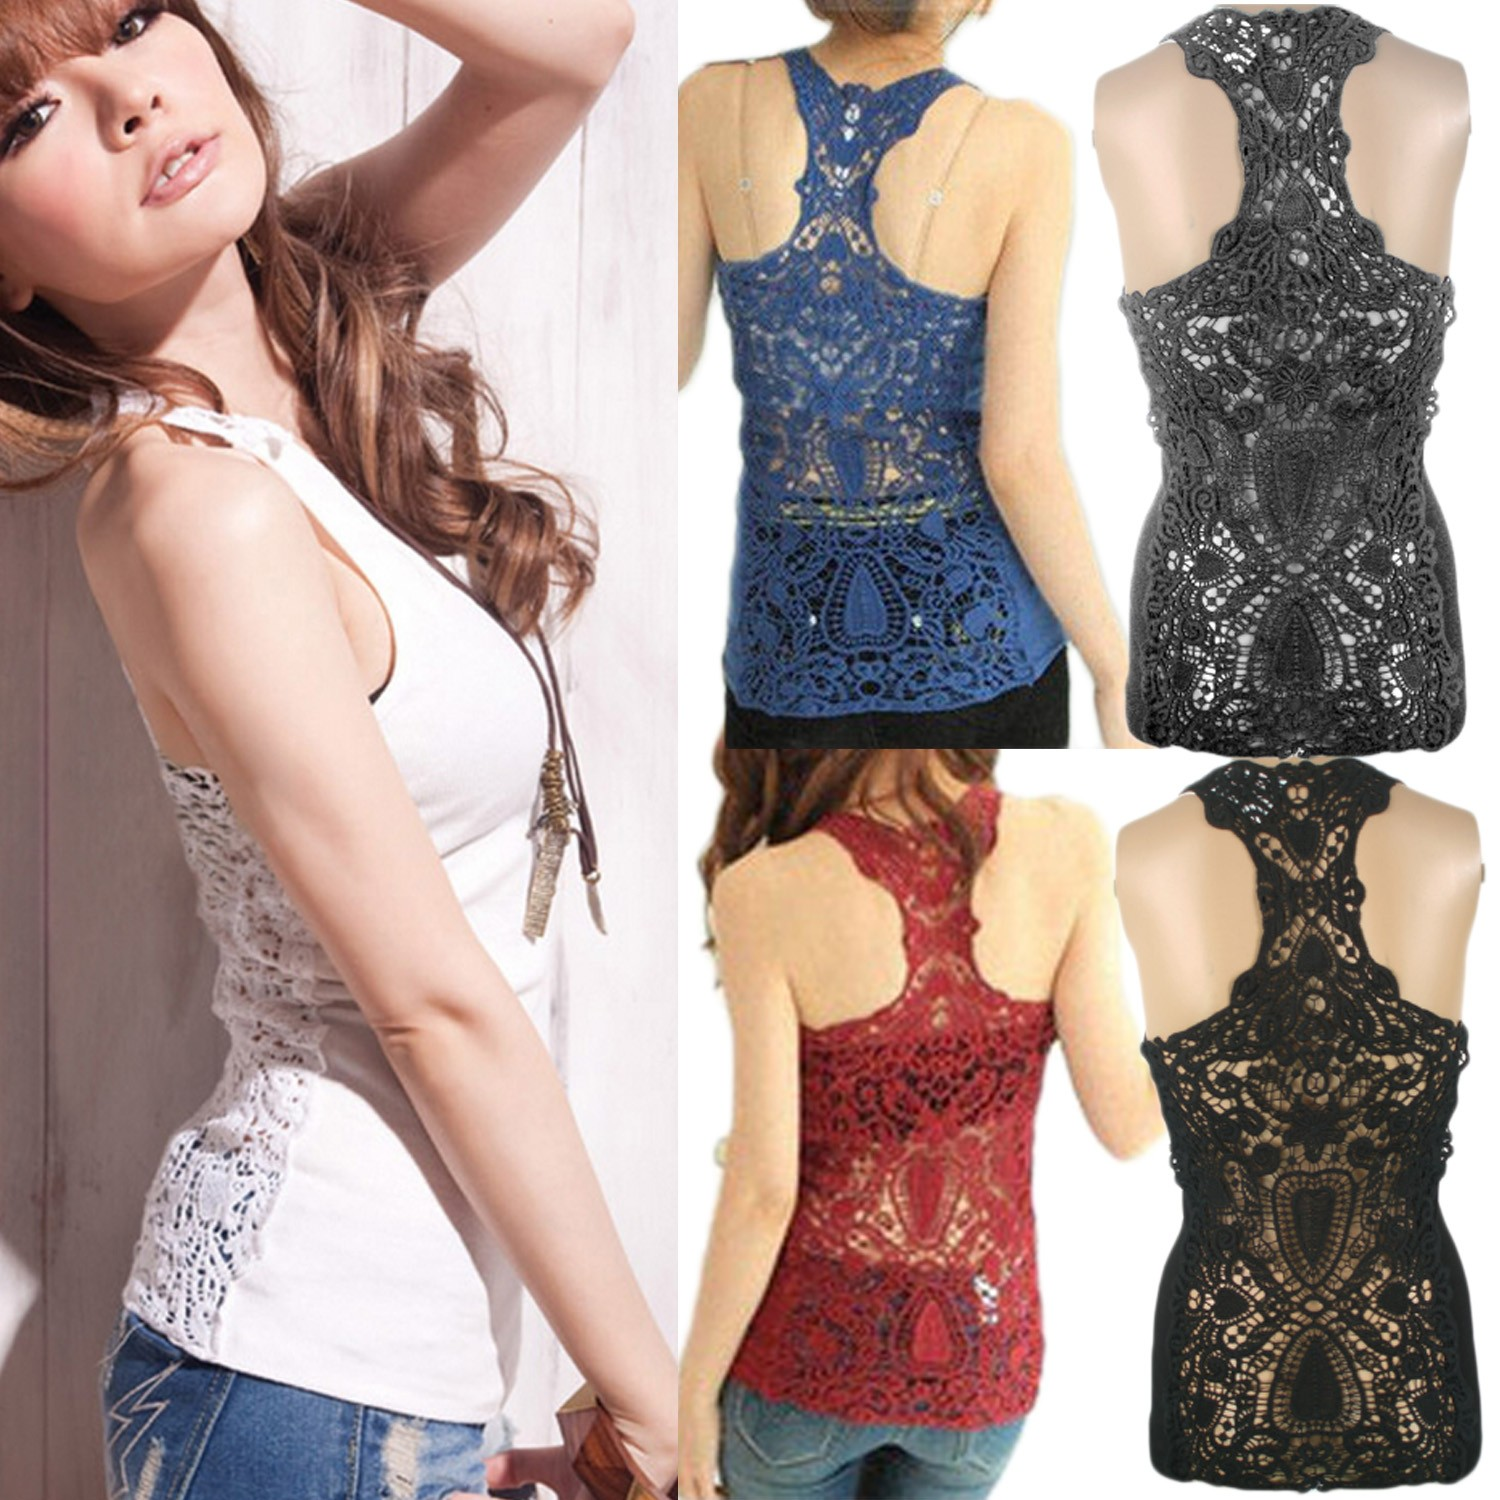 NEW Lace Crochet Cami Vest Tank Top Singlet US sz S Black/Blue/Grey/Red/White